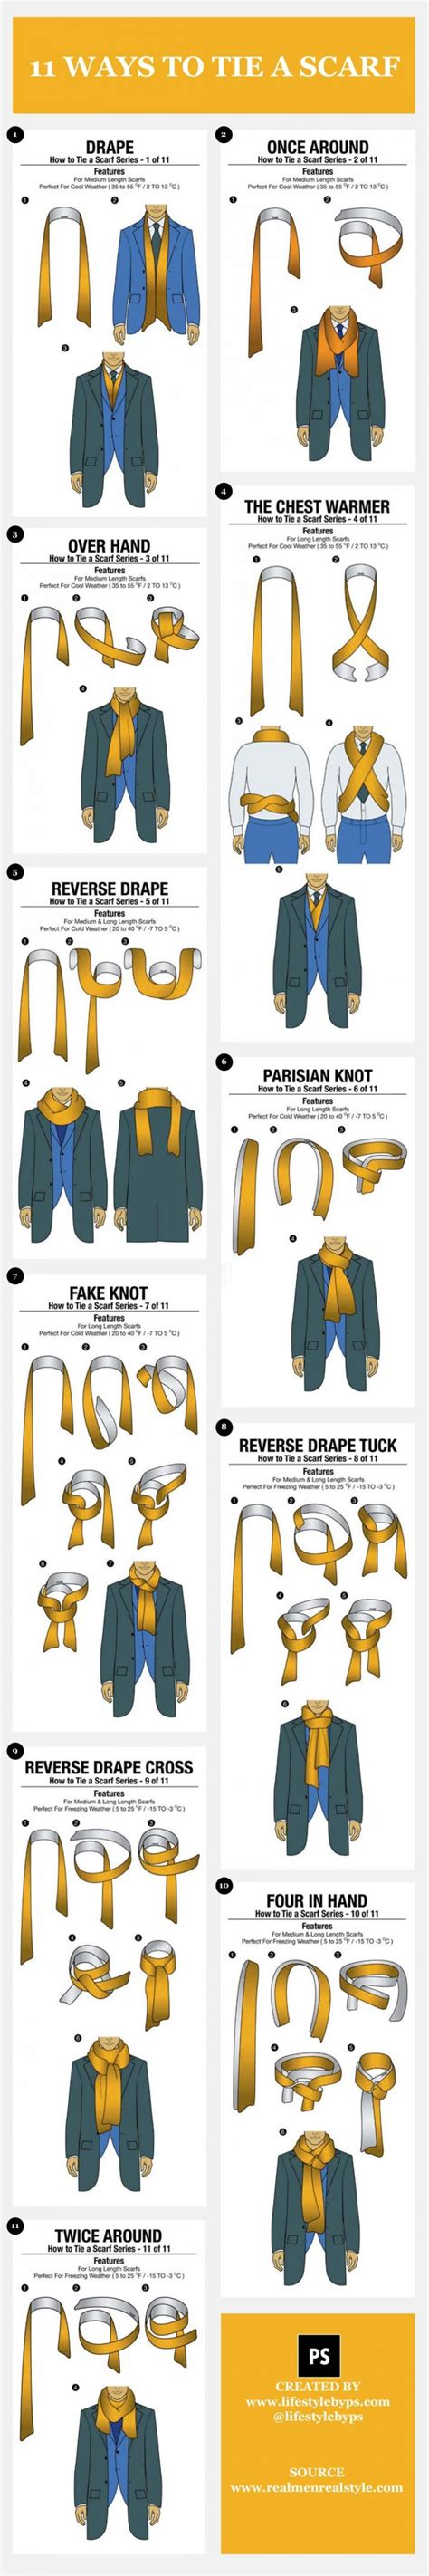 11 ways a guy can tie his scarf the huffington post 11 ways to tie a scarf for men and women